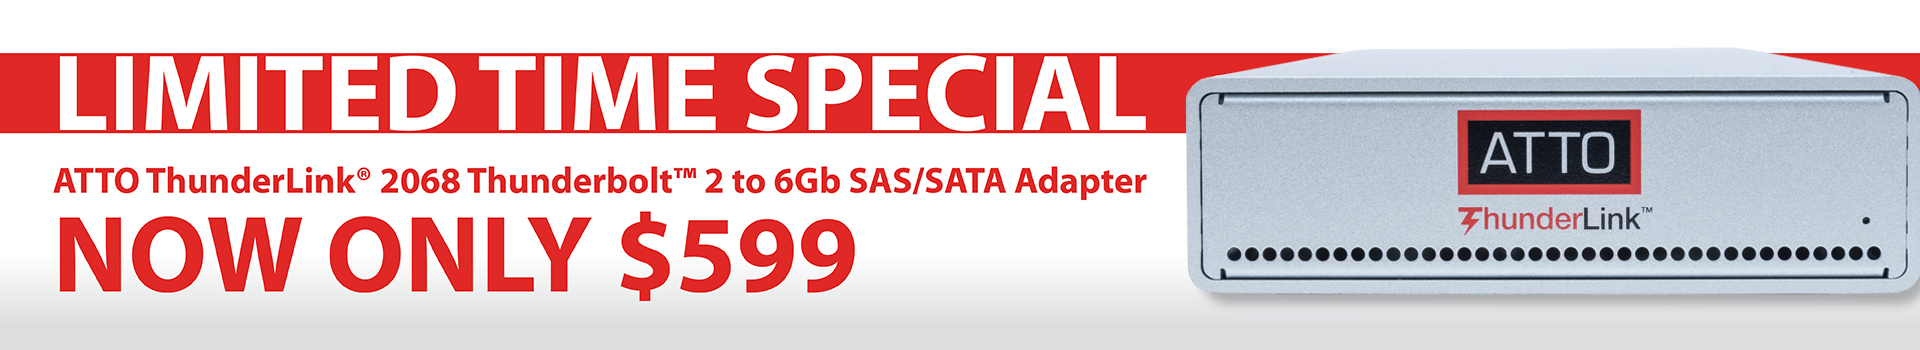 LIMITED TIME SPECIAL ATTO ThunderLink® 2068 Thunderbolt™ 2 to 6 Gb SAS/SATA Adapter NOW ONLY $599